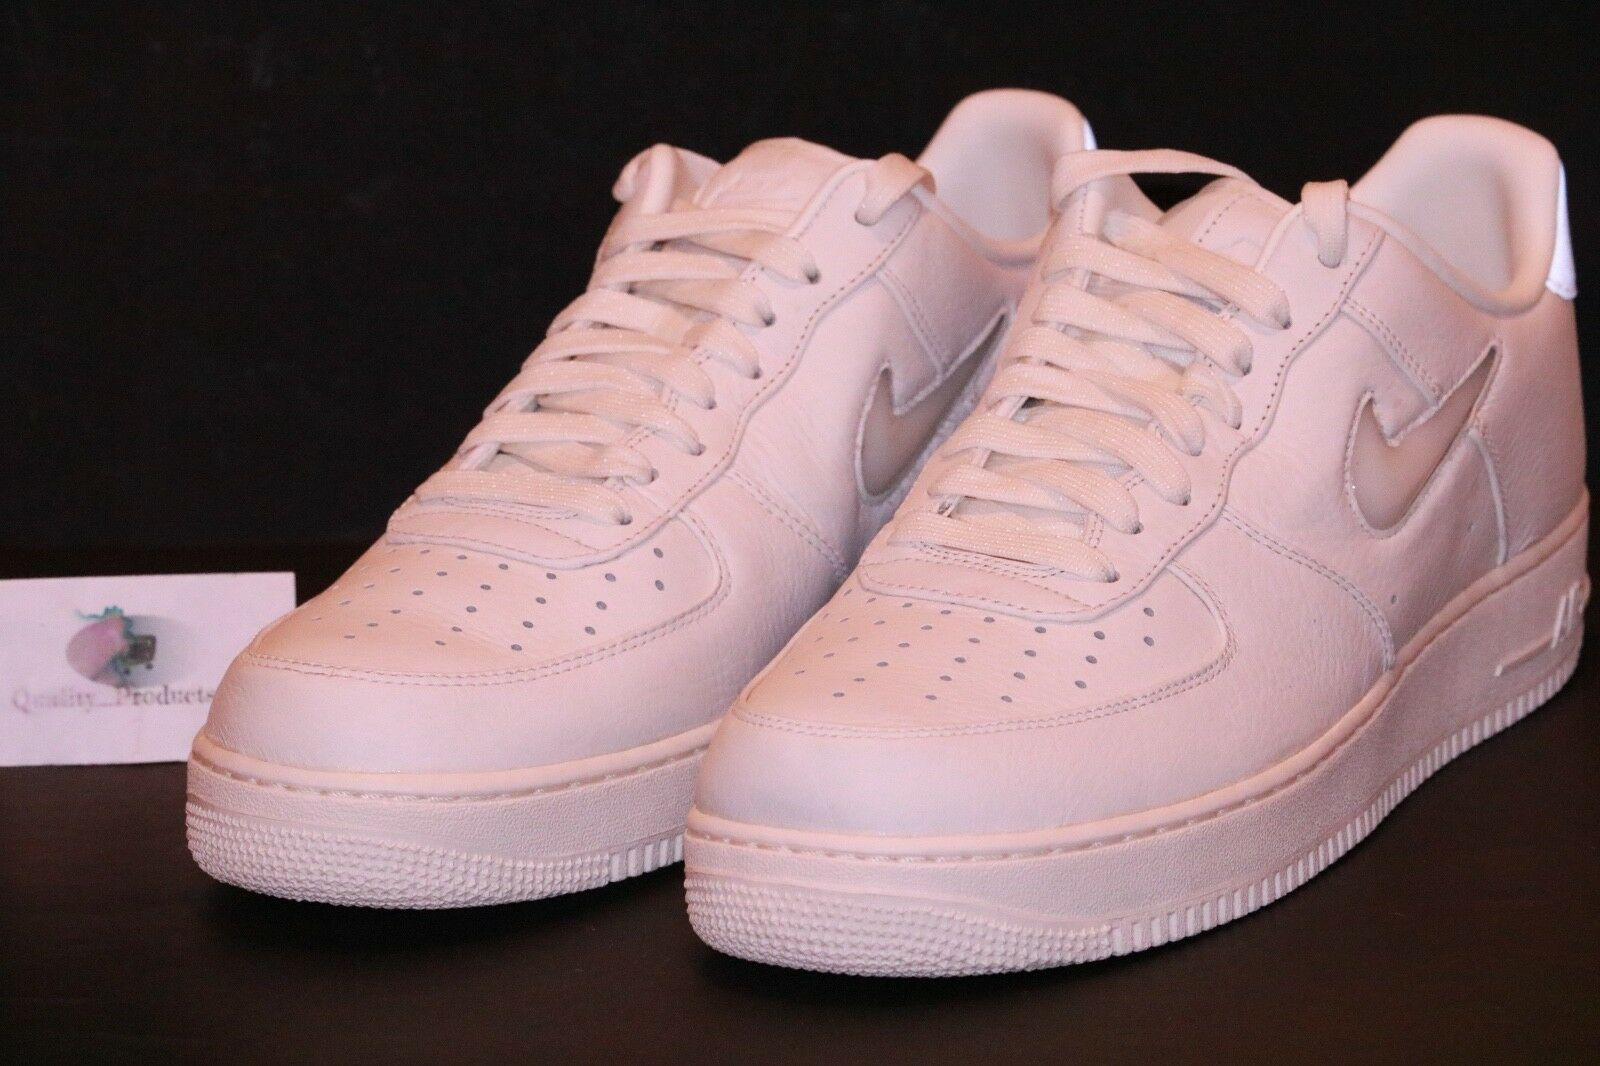 Nike NikeLab Air Force 1 Low Retro Retro Retro Premium Sail Sail White 941912 100 Size 13 eb52a9